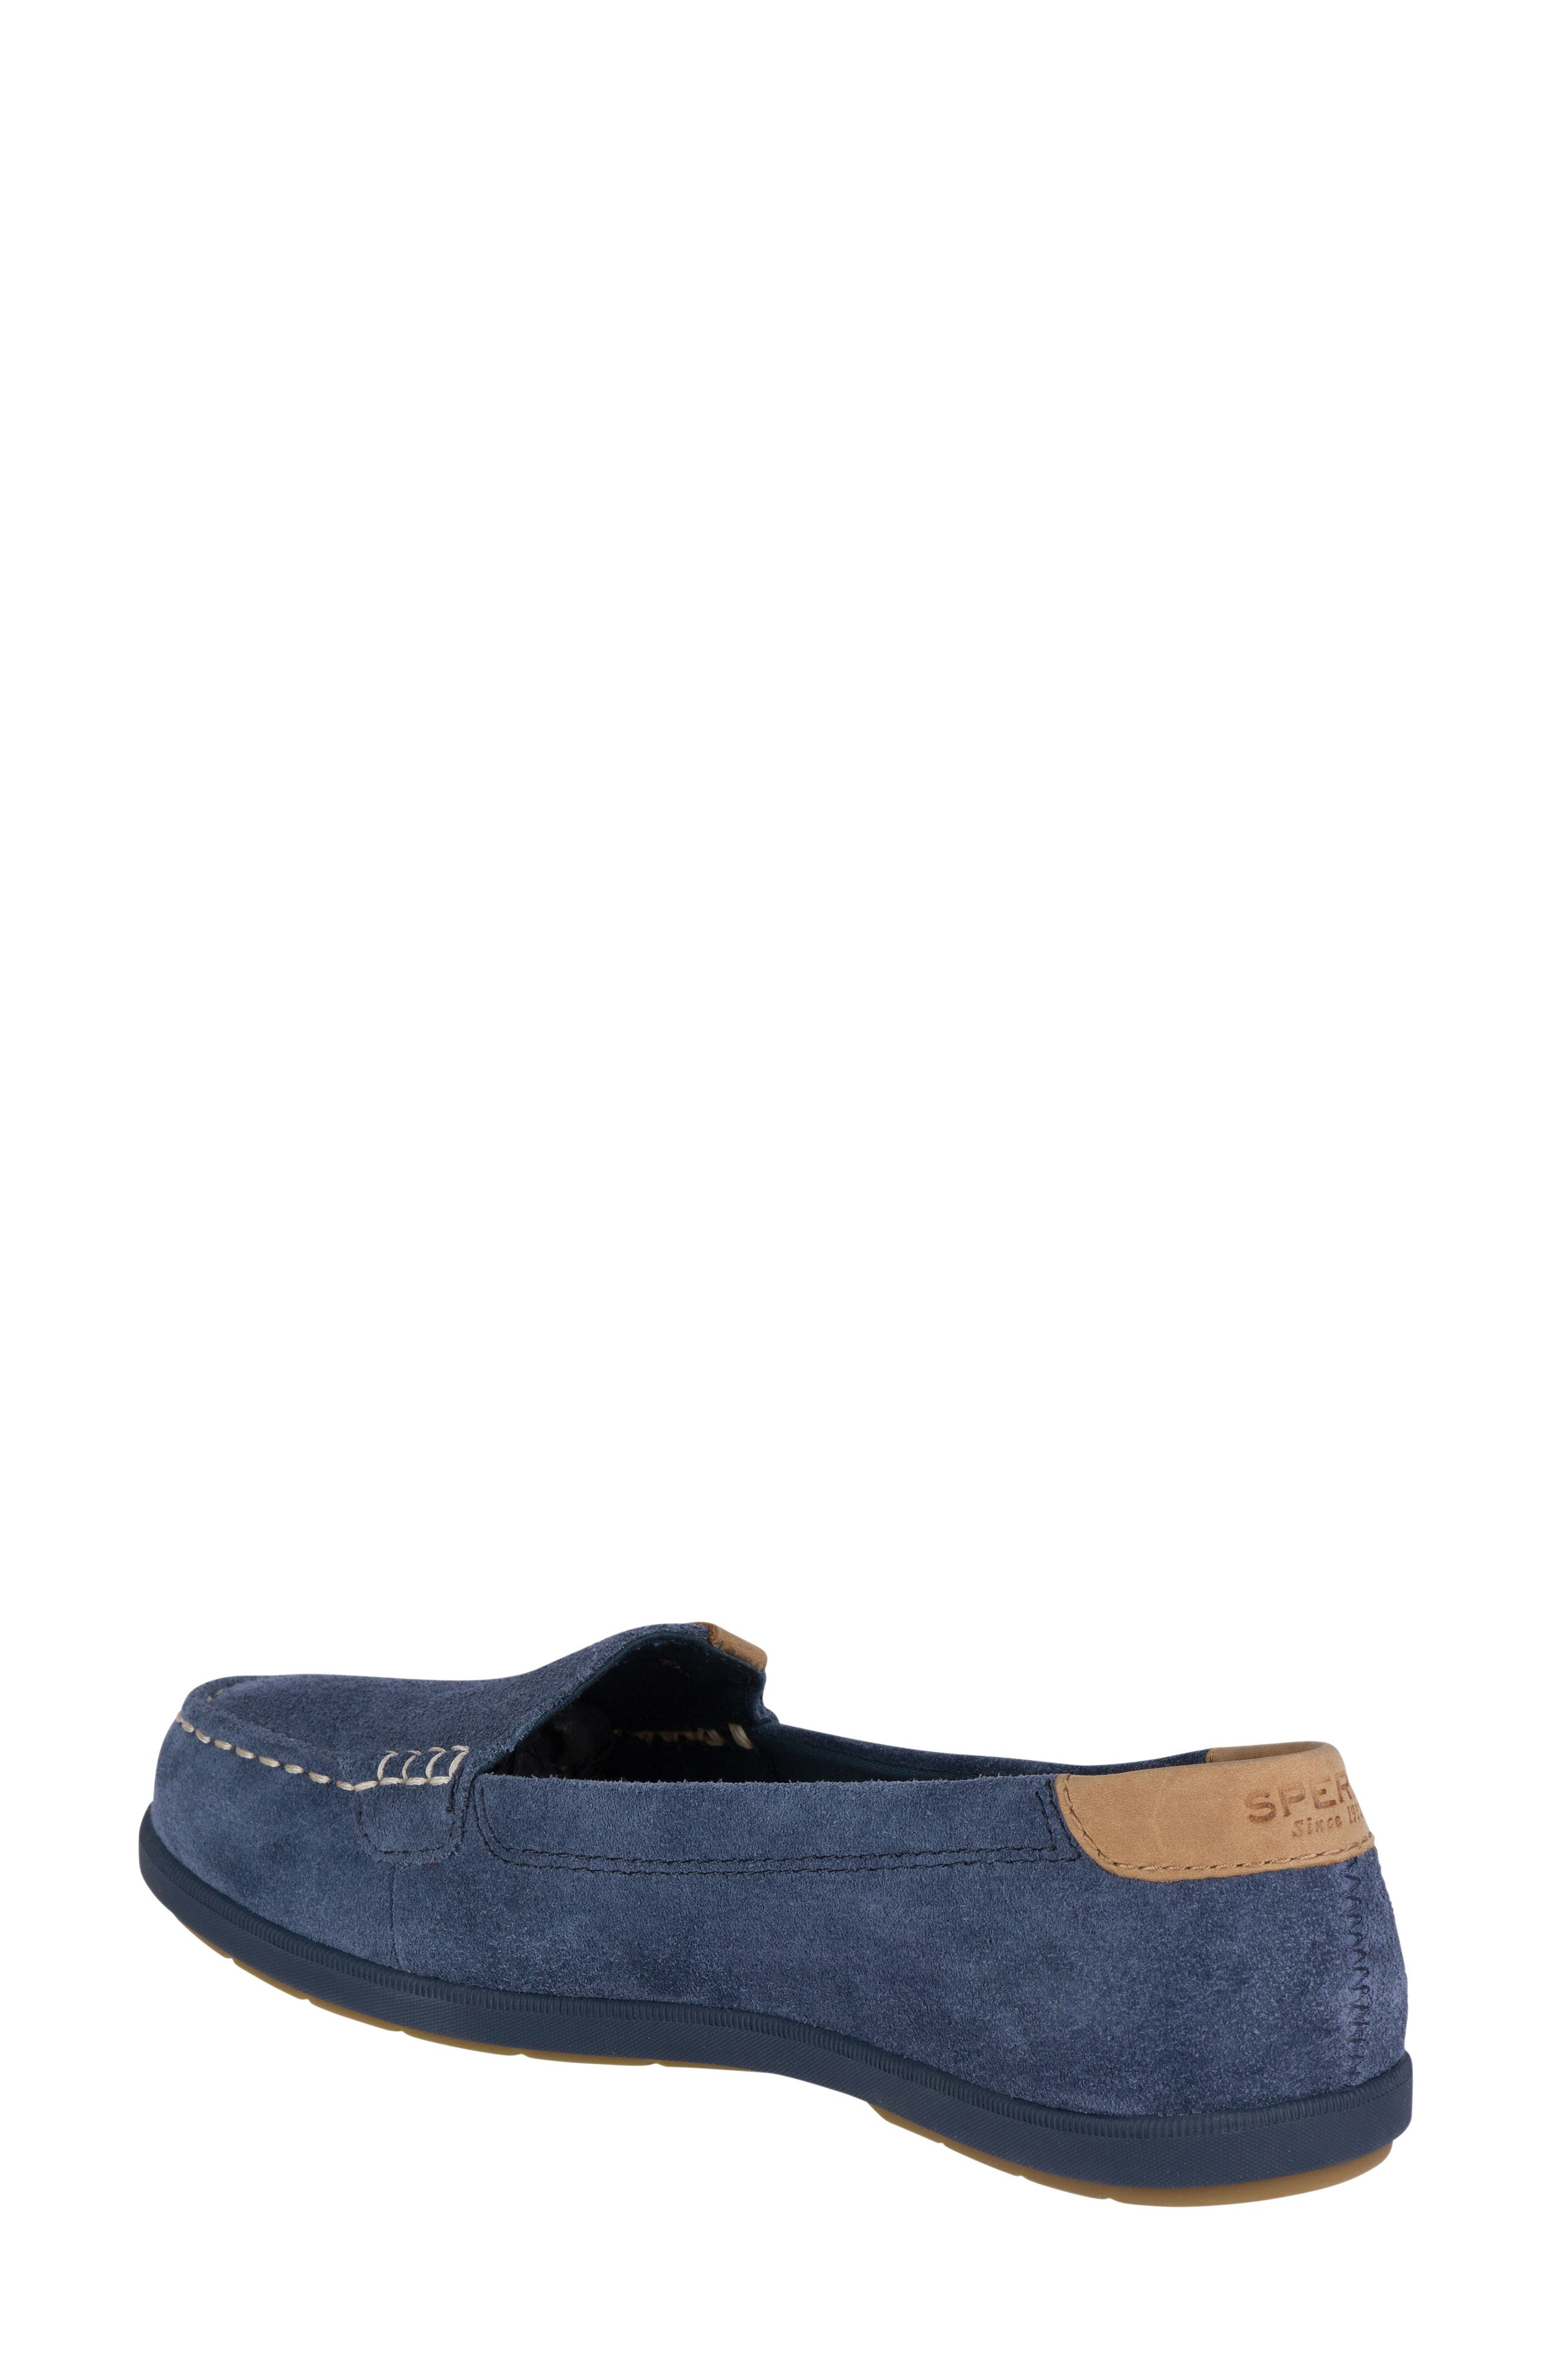 Alternate Image 2  - Sperry Coil Mia Loafer (Women)